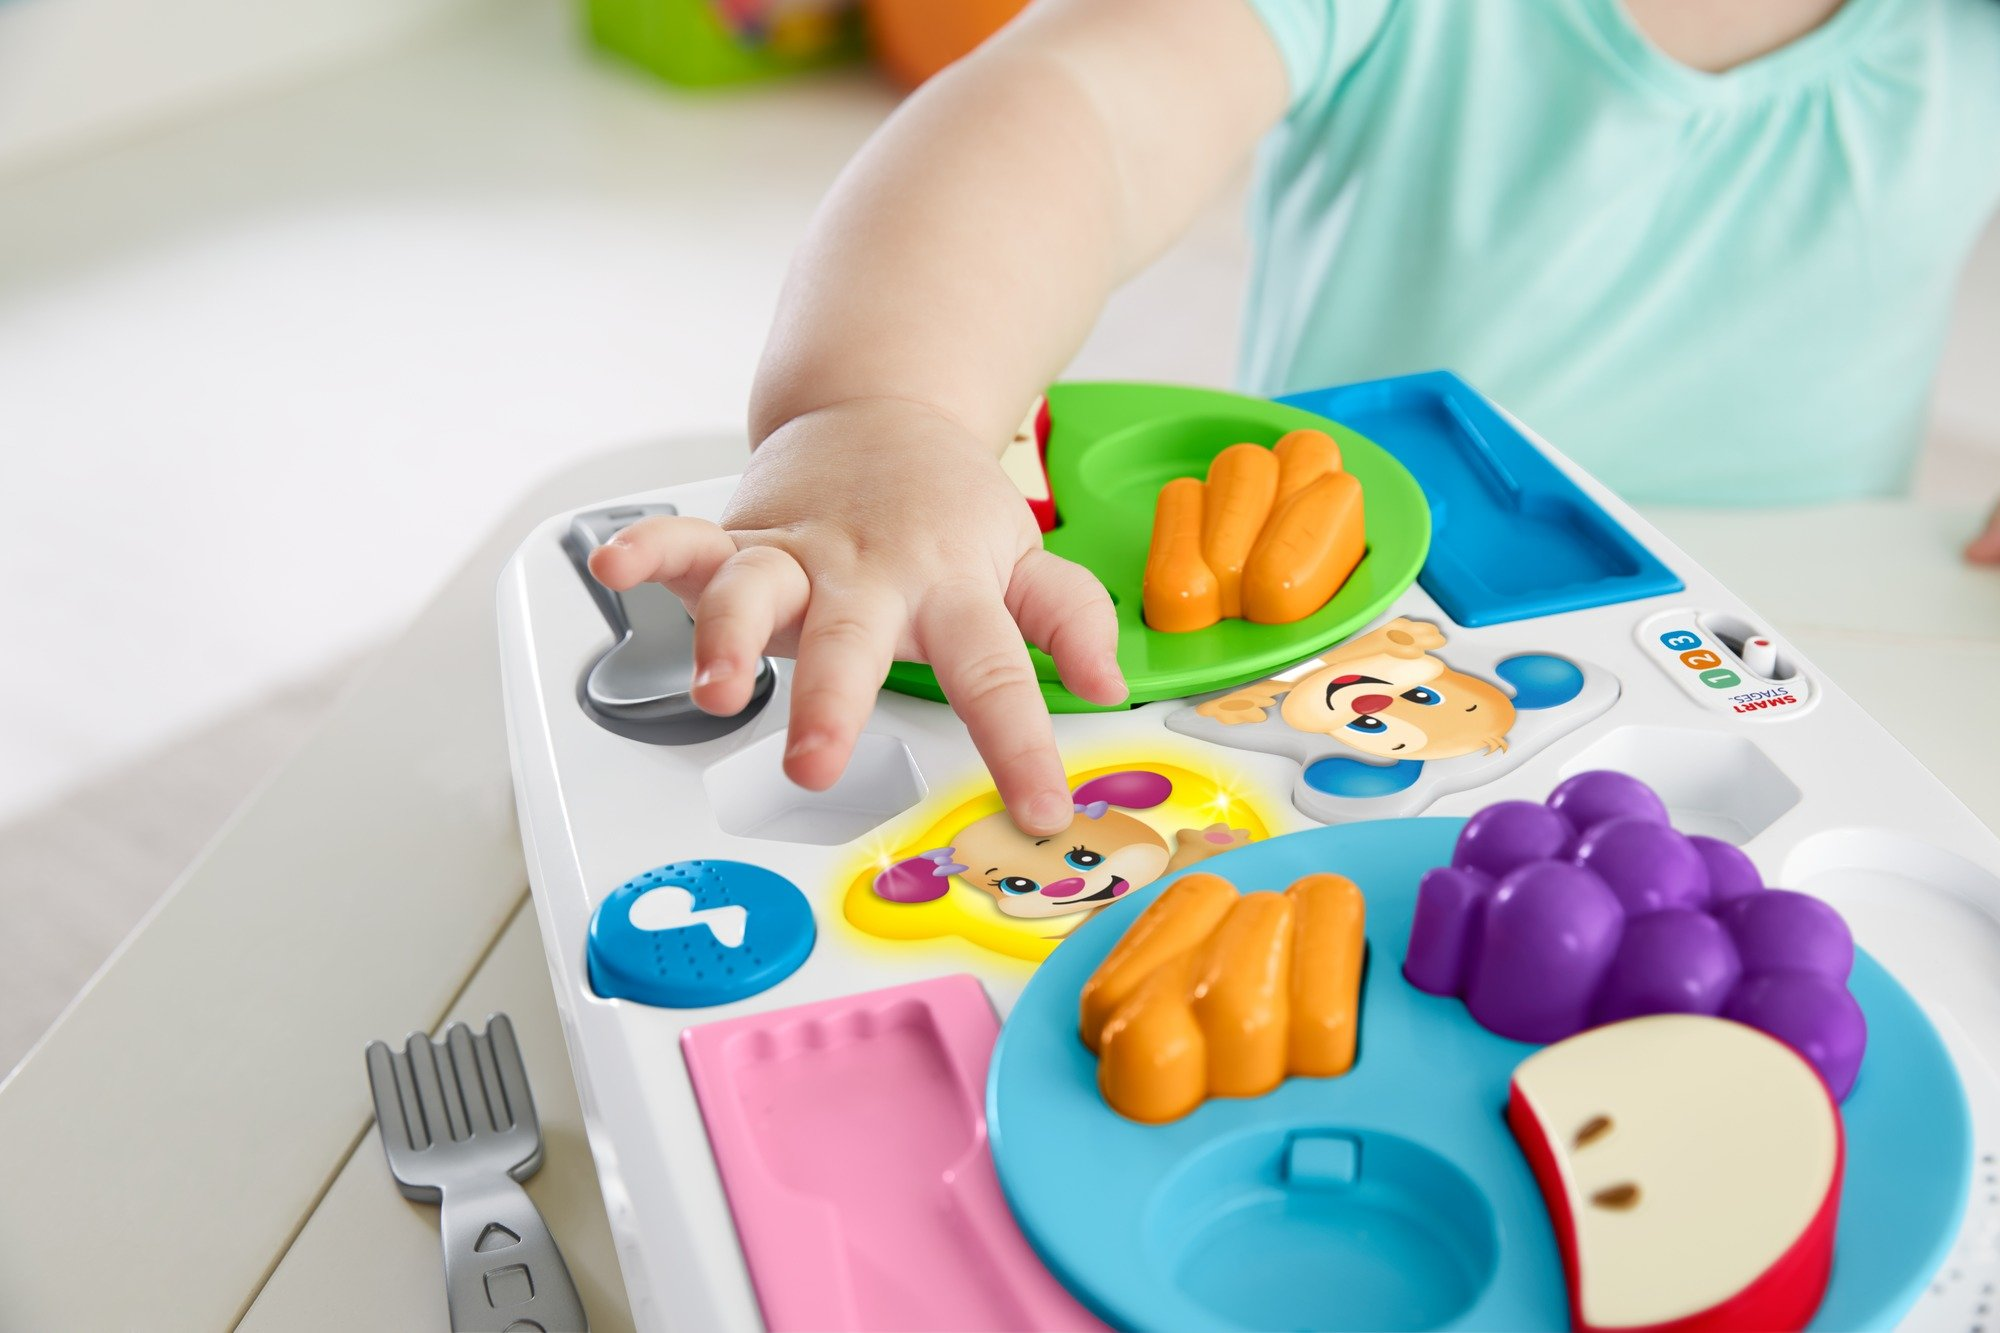 Fisher-Price FBM90 Say Please Snack Set, Laugh and Learn Toddler Kitchen and Food Role Play Toy, Suitable for 18 Months Plus by Fisher-Price (Image #4)